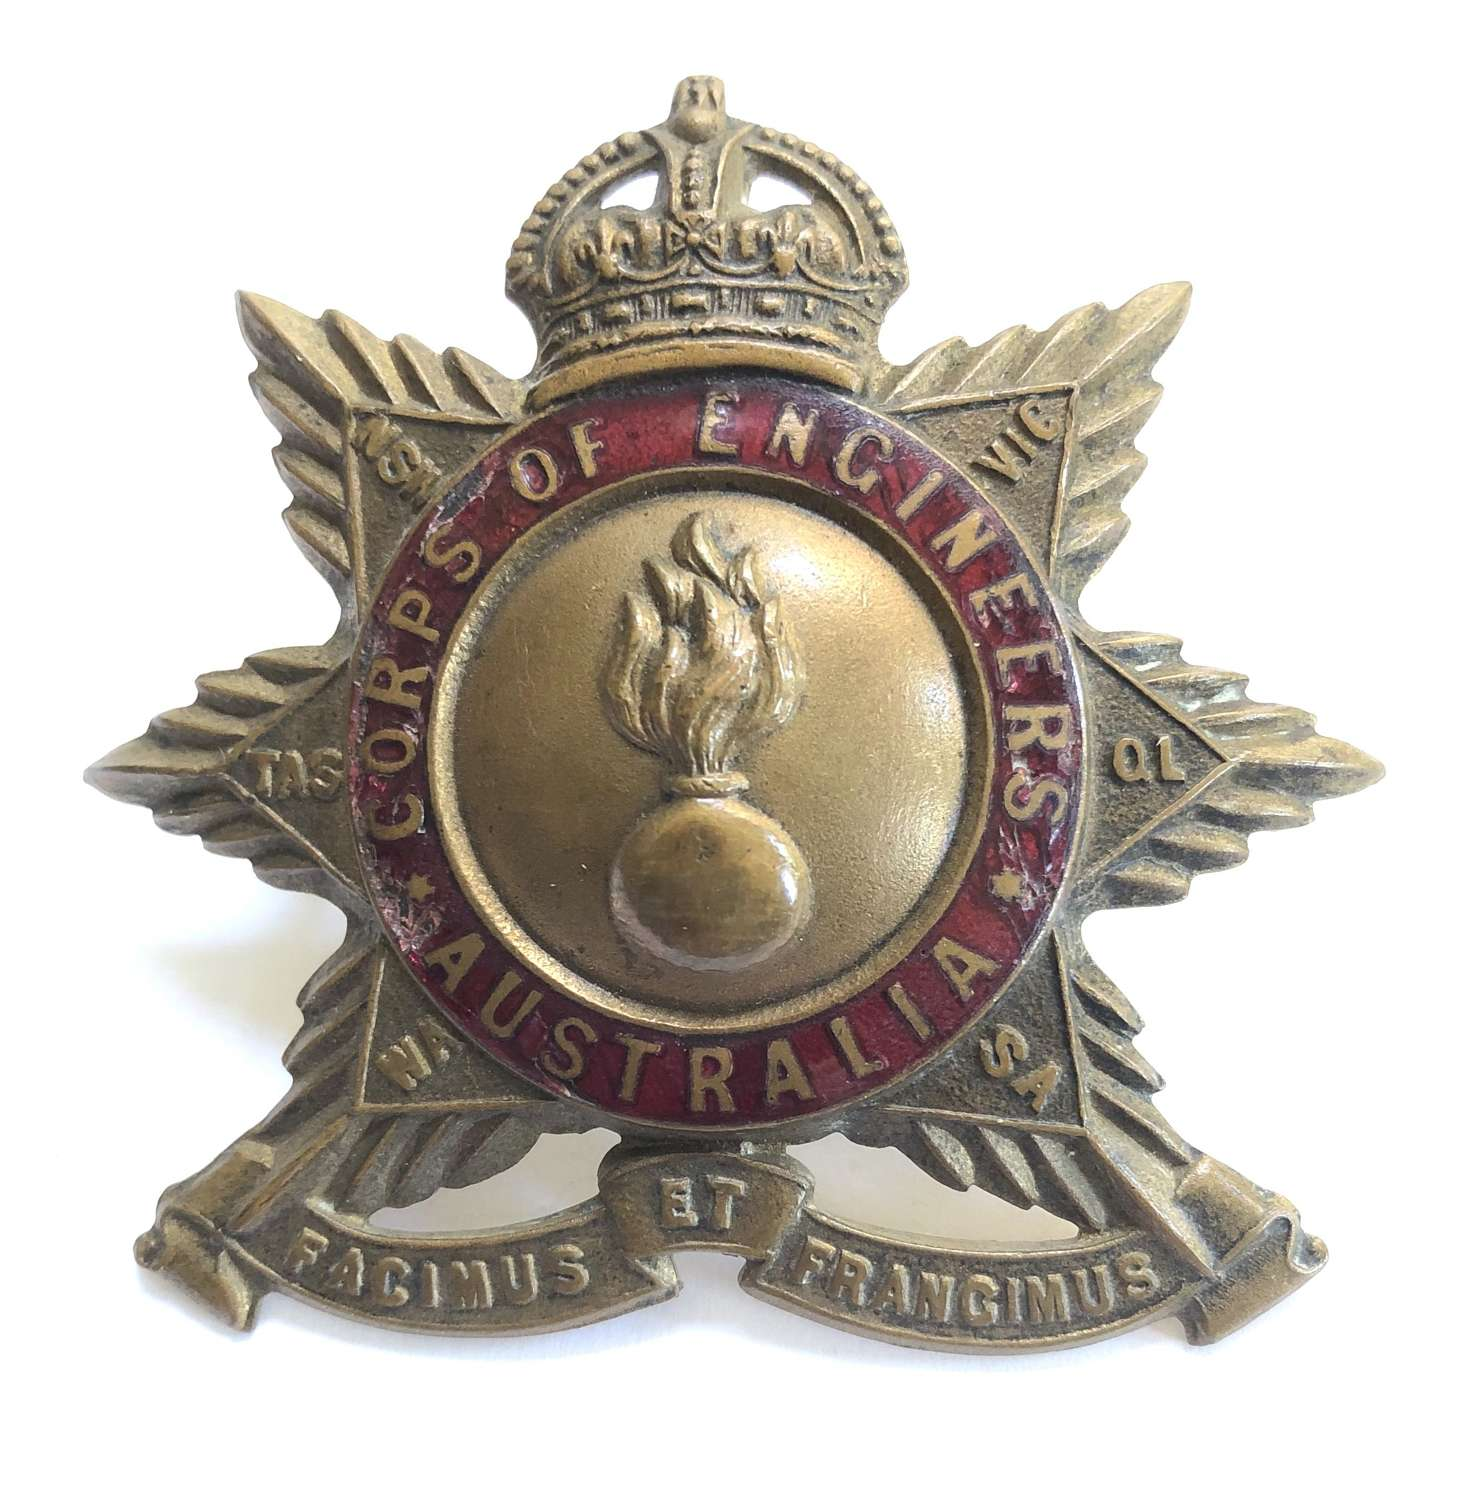 Australian Corps of Engineers Officer's hat badge circa 1901-12